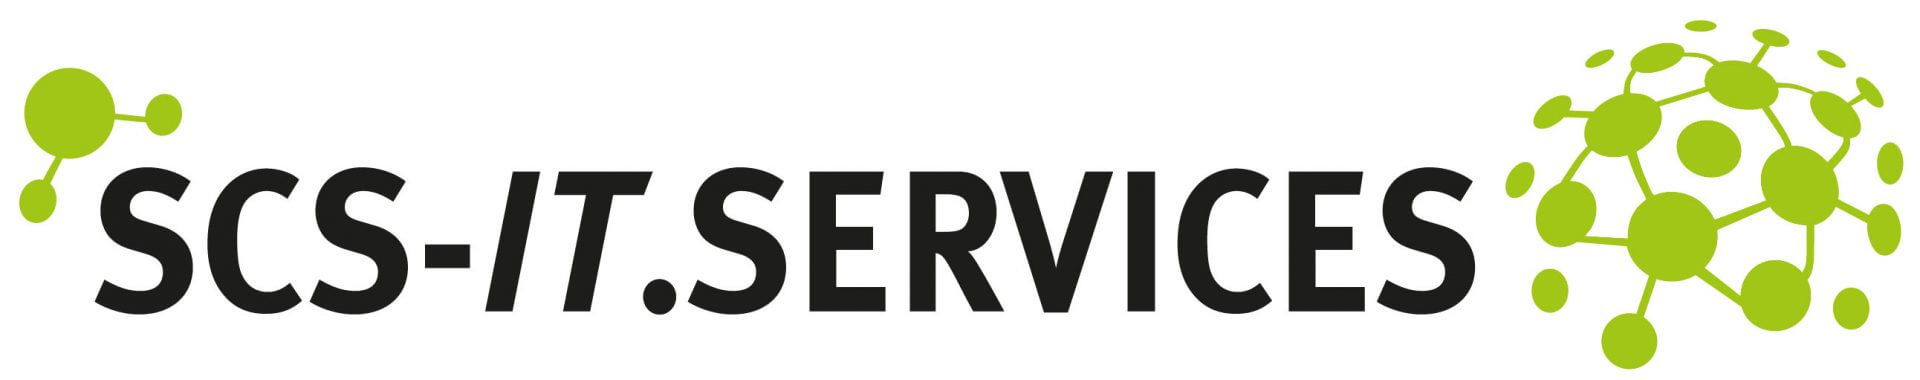 SCS-IT.SERVICES Logo